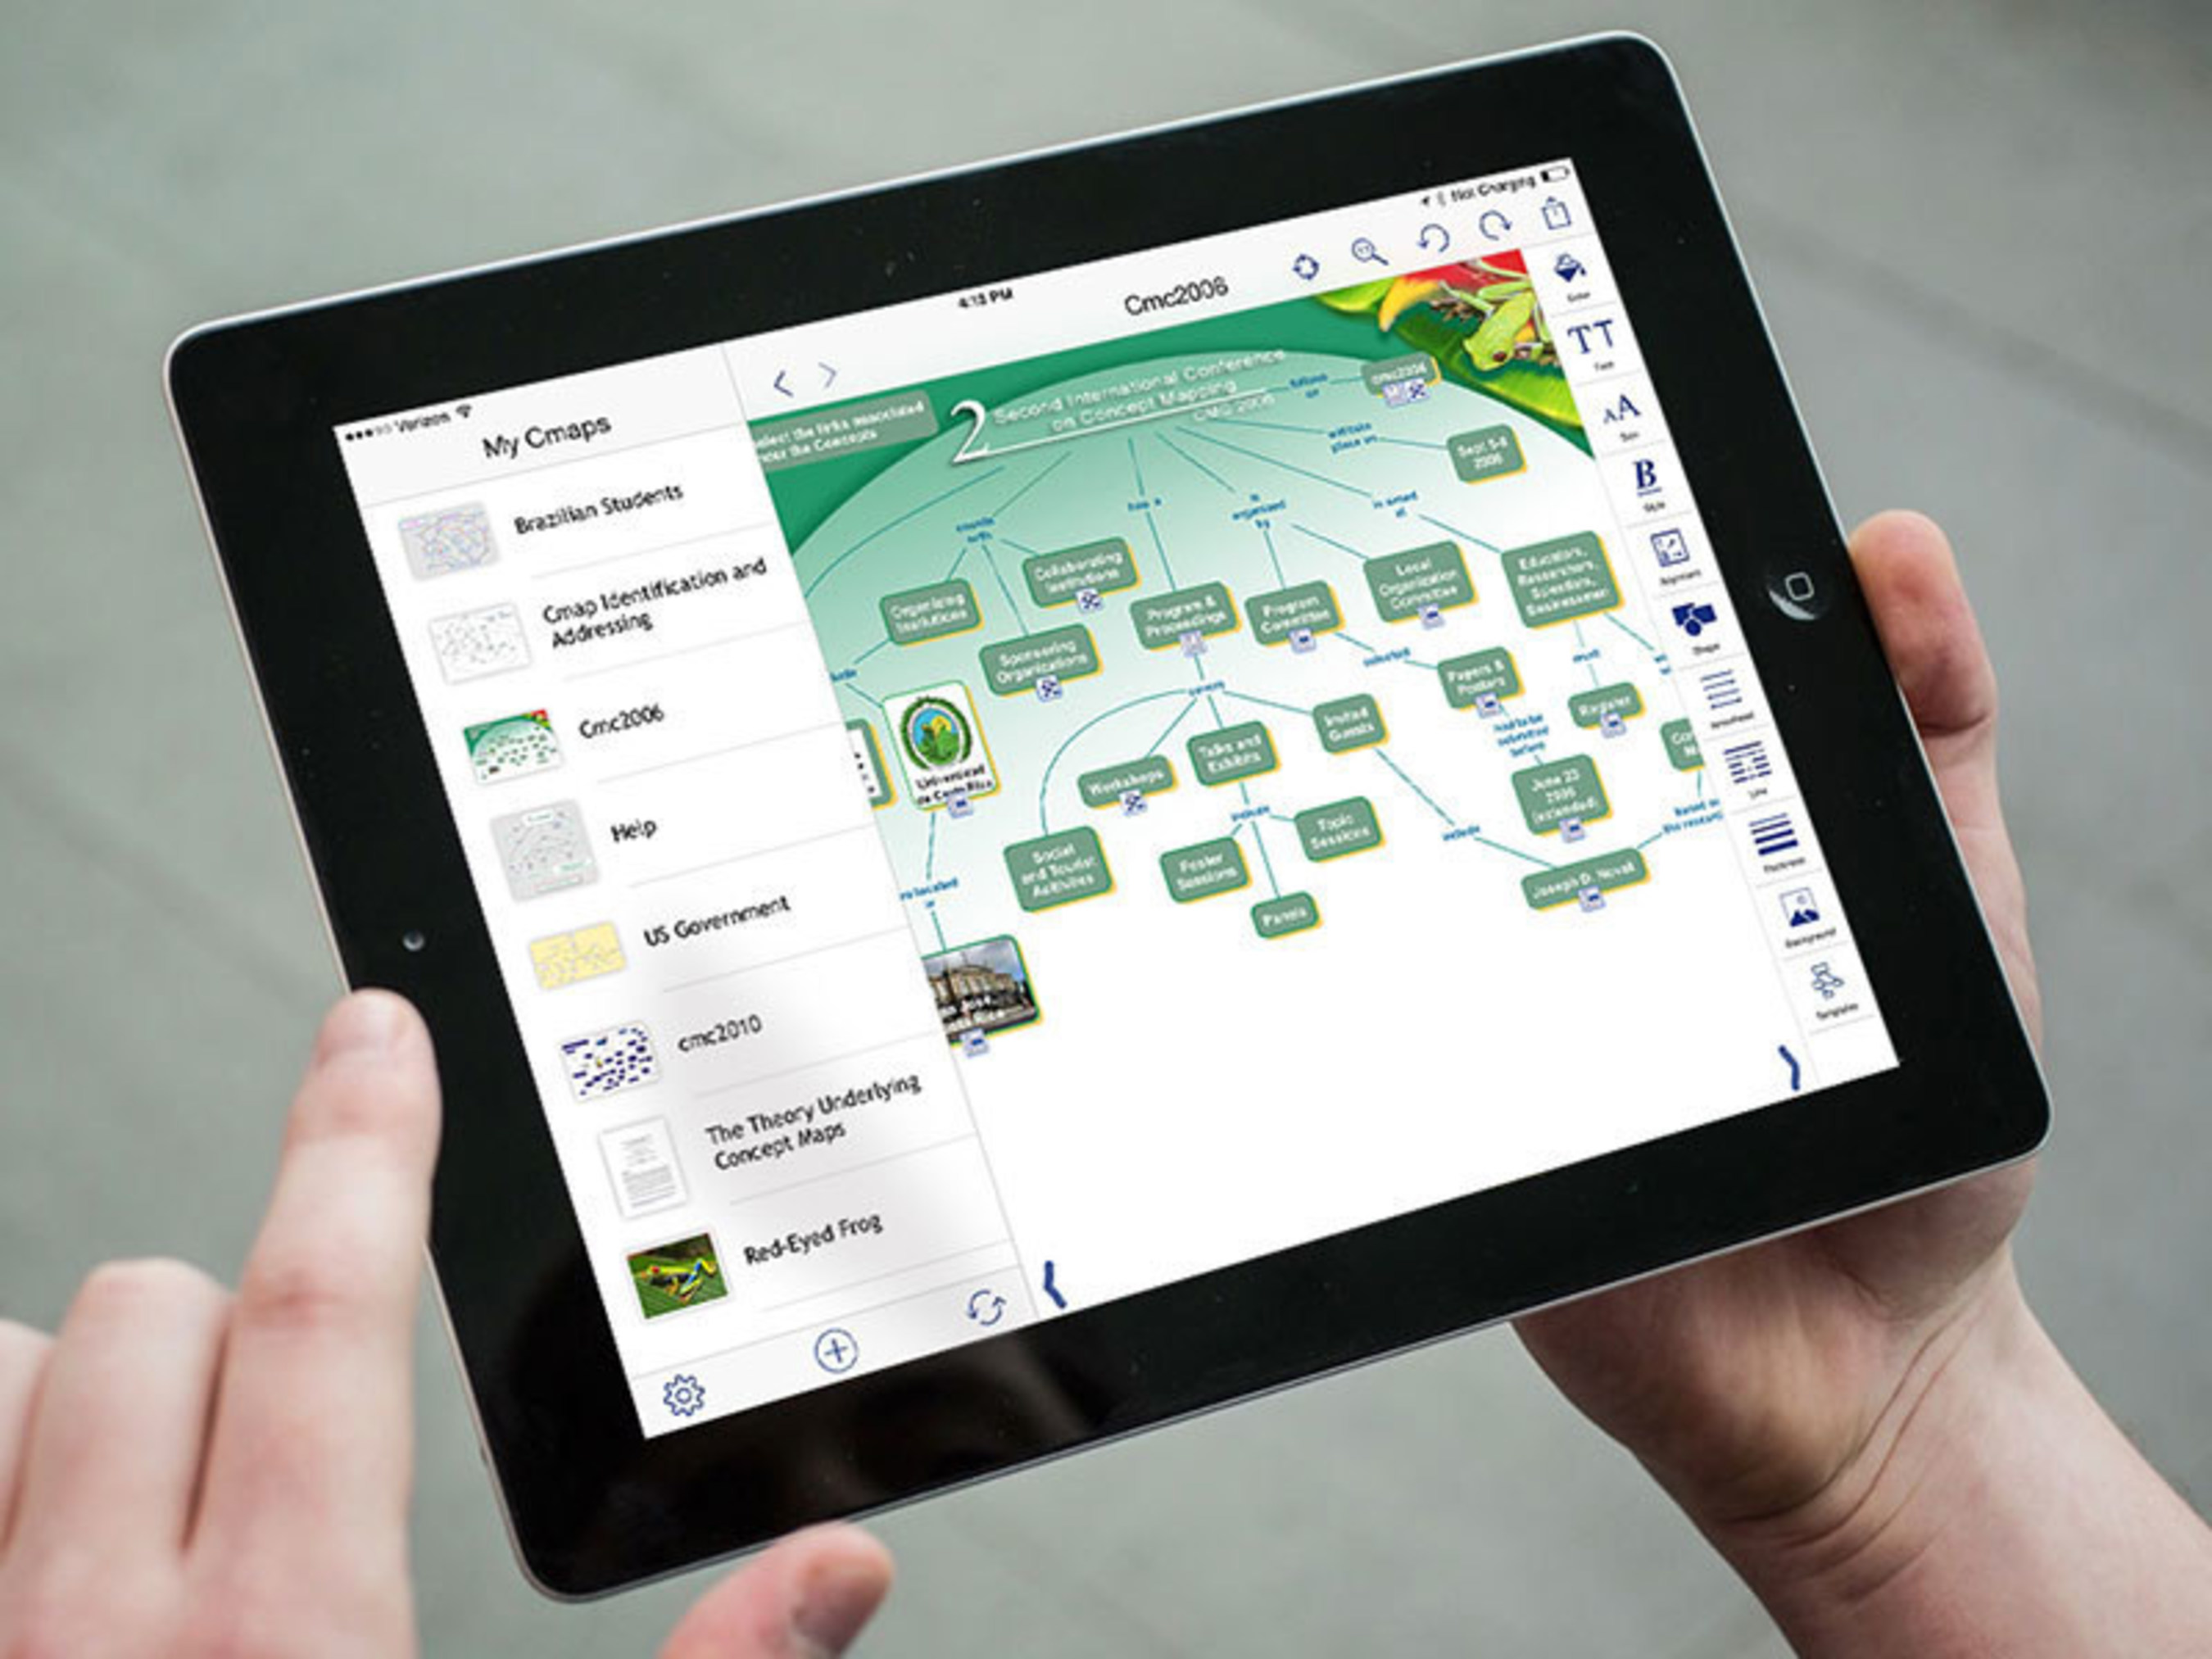 CmapTools iPad App Now Available Supporting Millions of Cmap Users